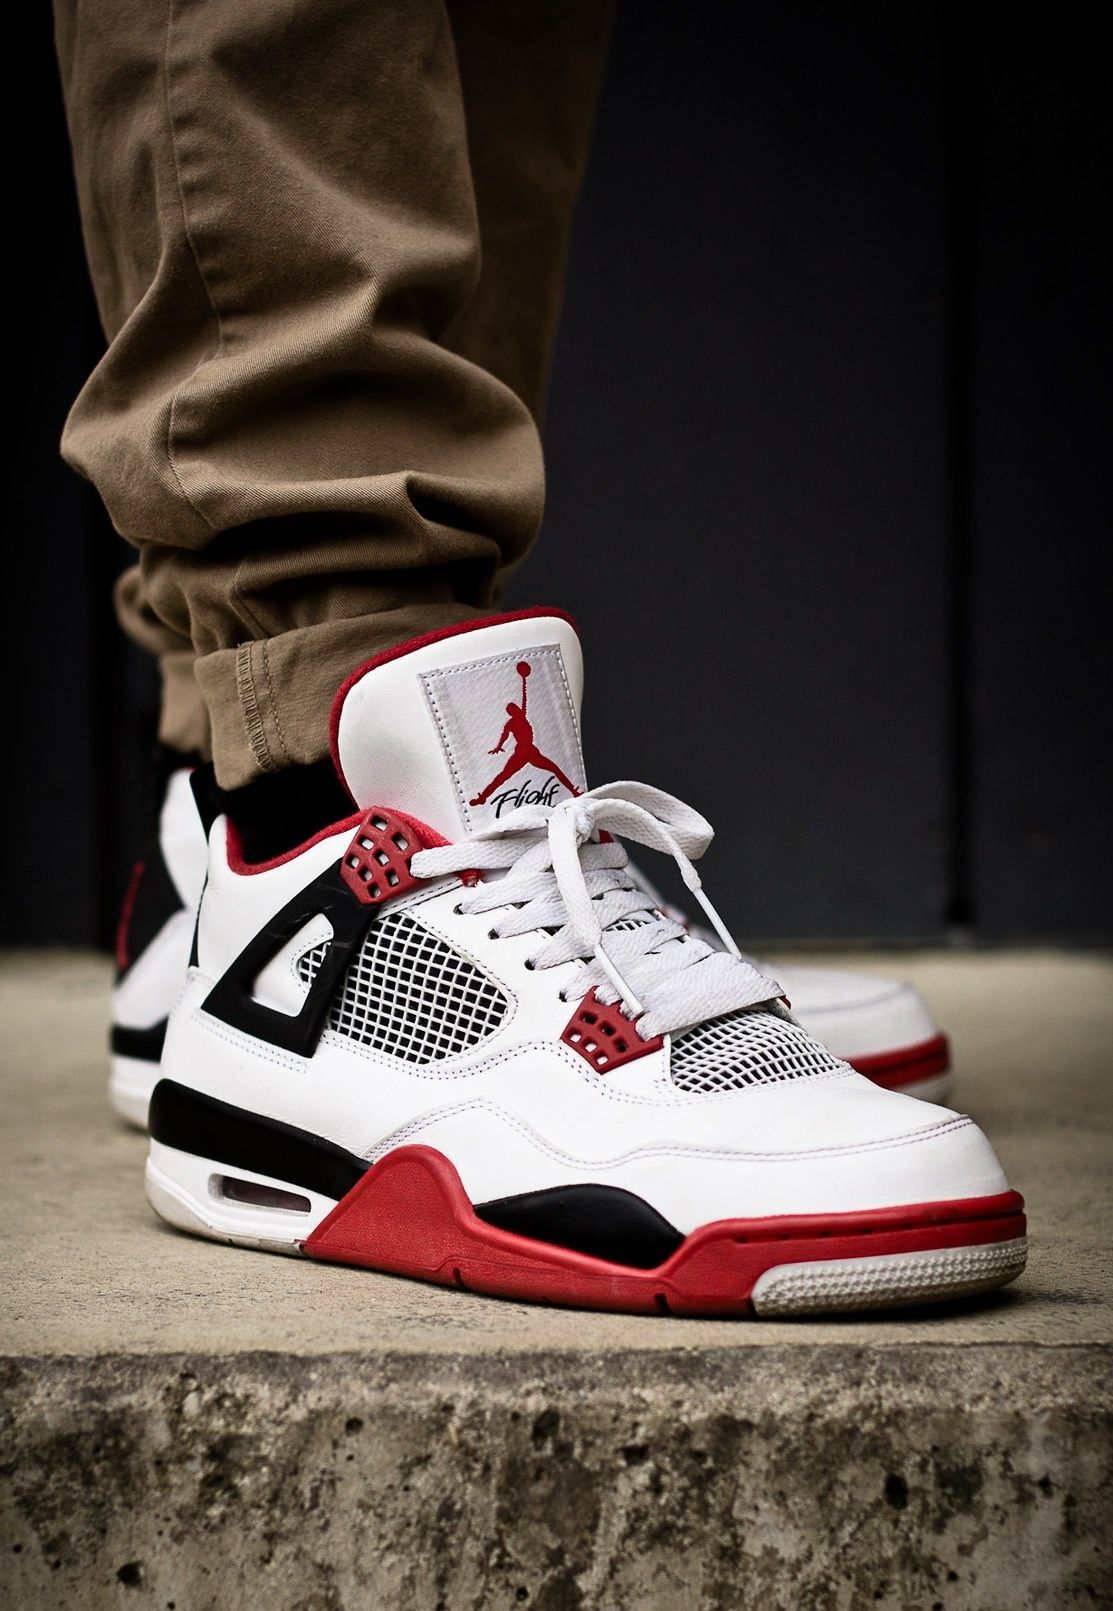 Jordan 4 S Fire Red Khaki Nike Shoes For Sale Running Shoes